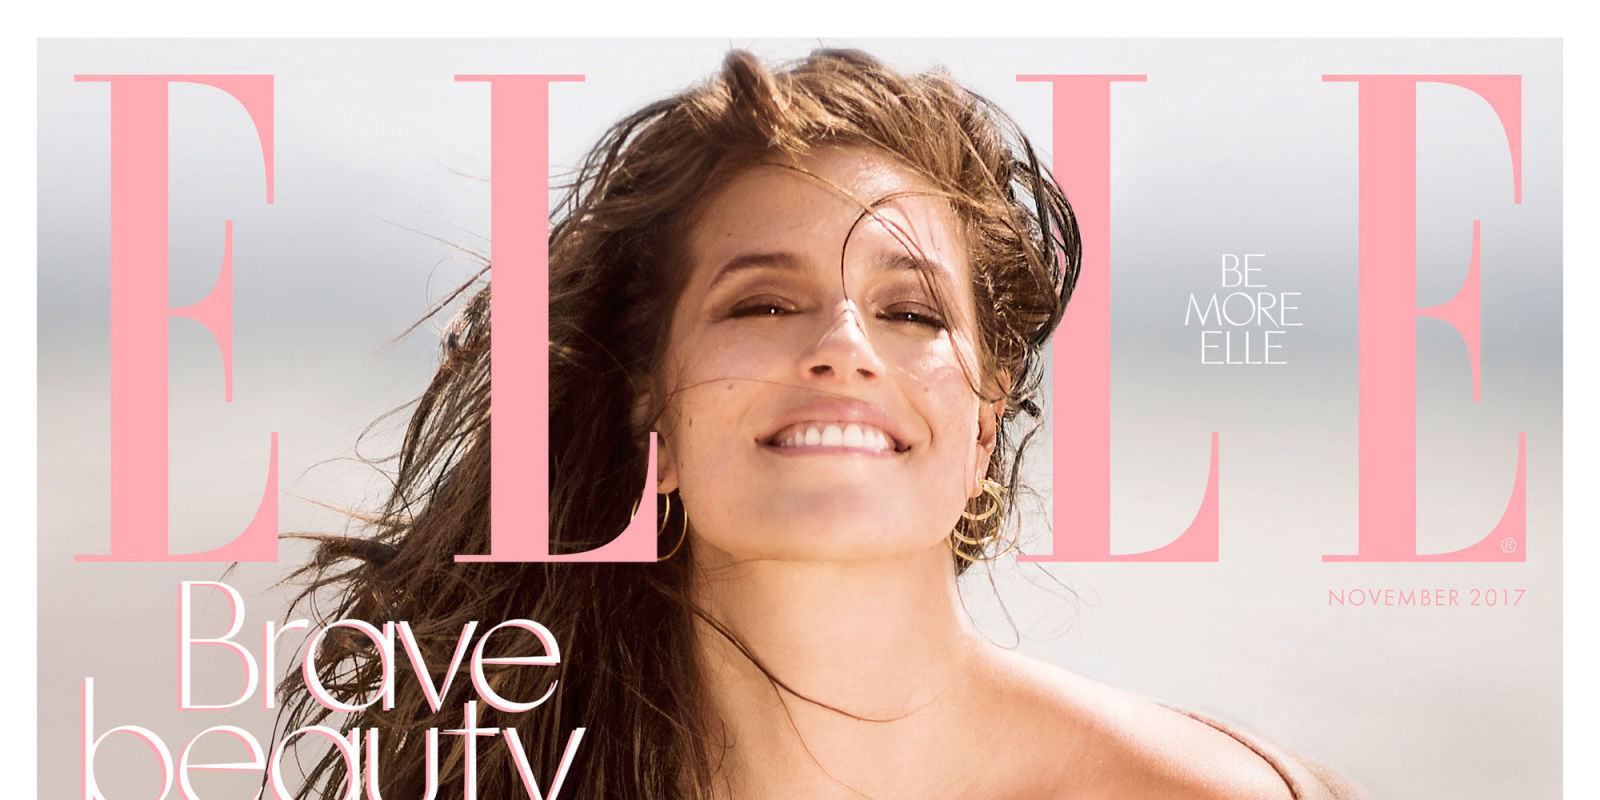 Ashley Graham Is All Kinds Of Cindy Crawford Vibes On The Cover Of ELLE This Month